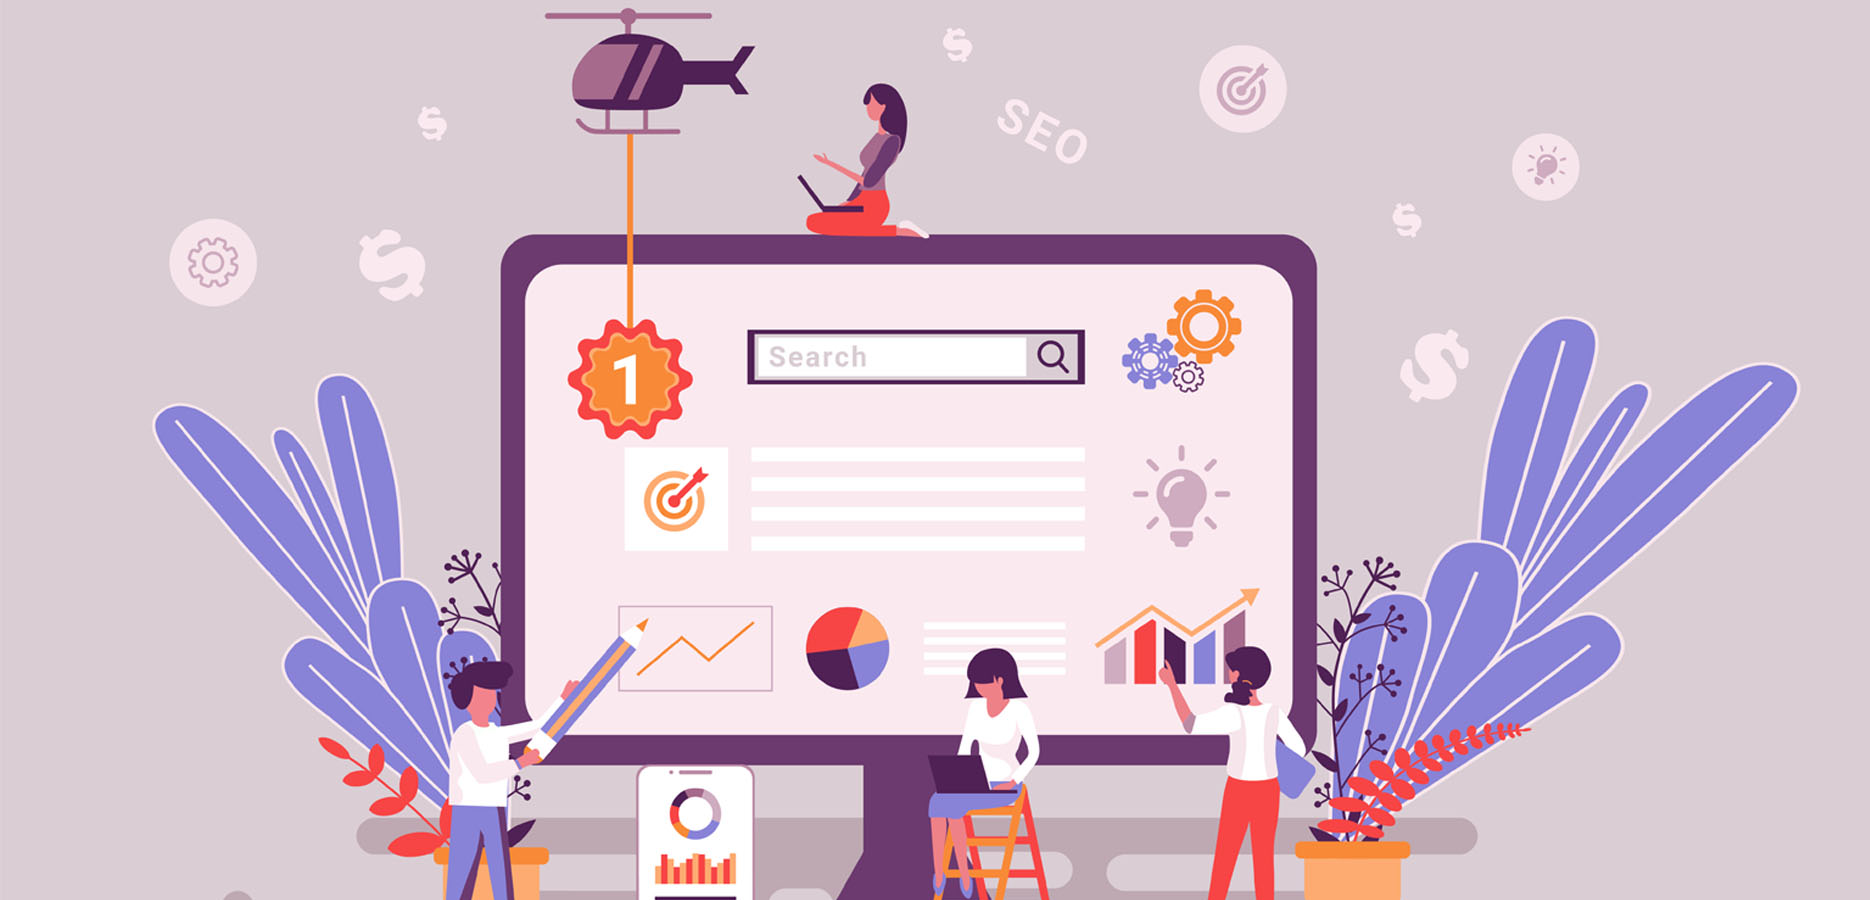 Top 5 SEO Trends In 2020 To Implement.